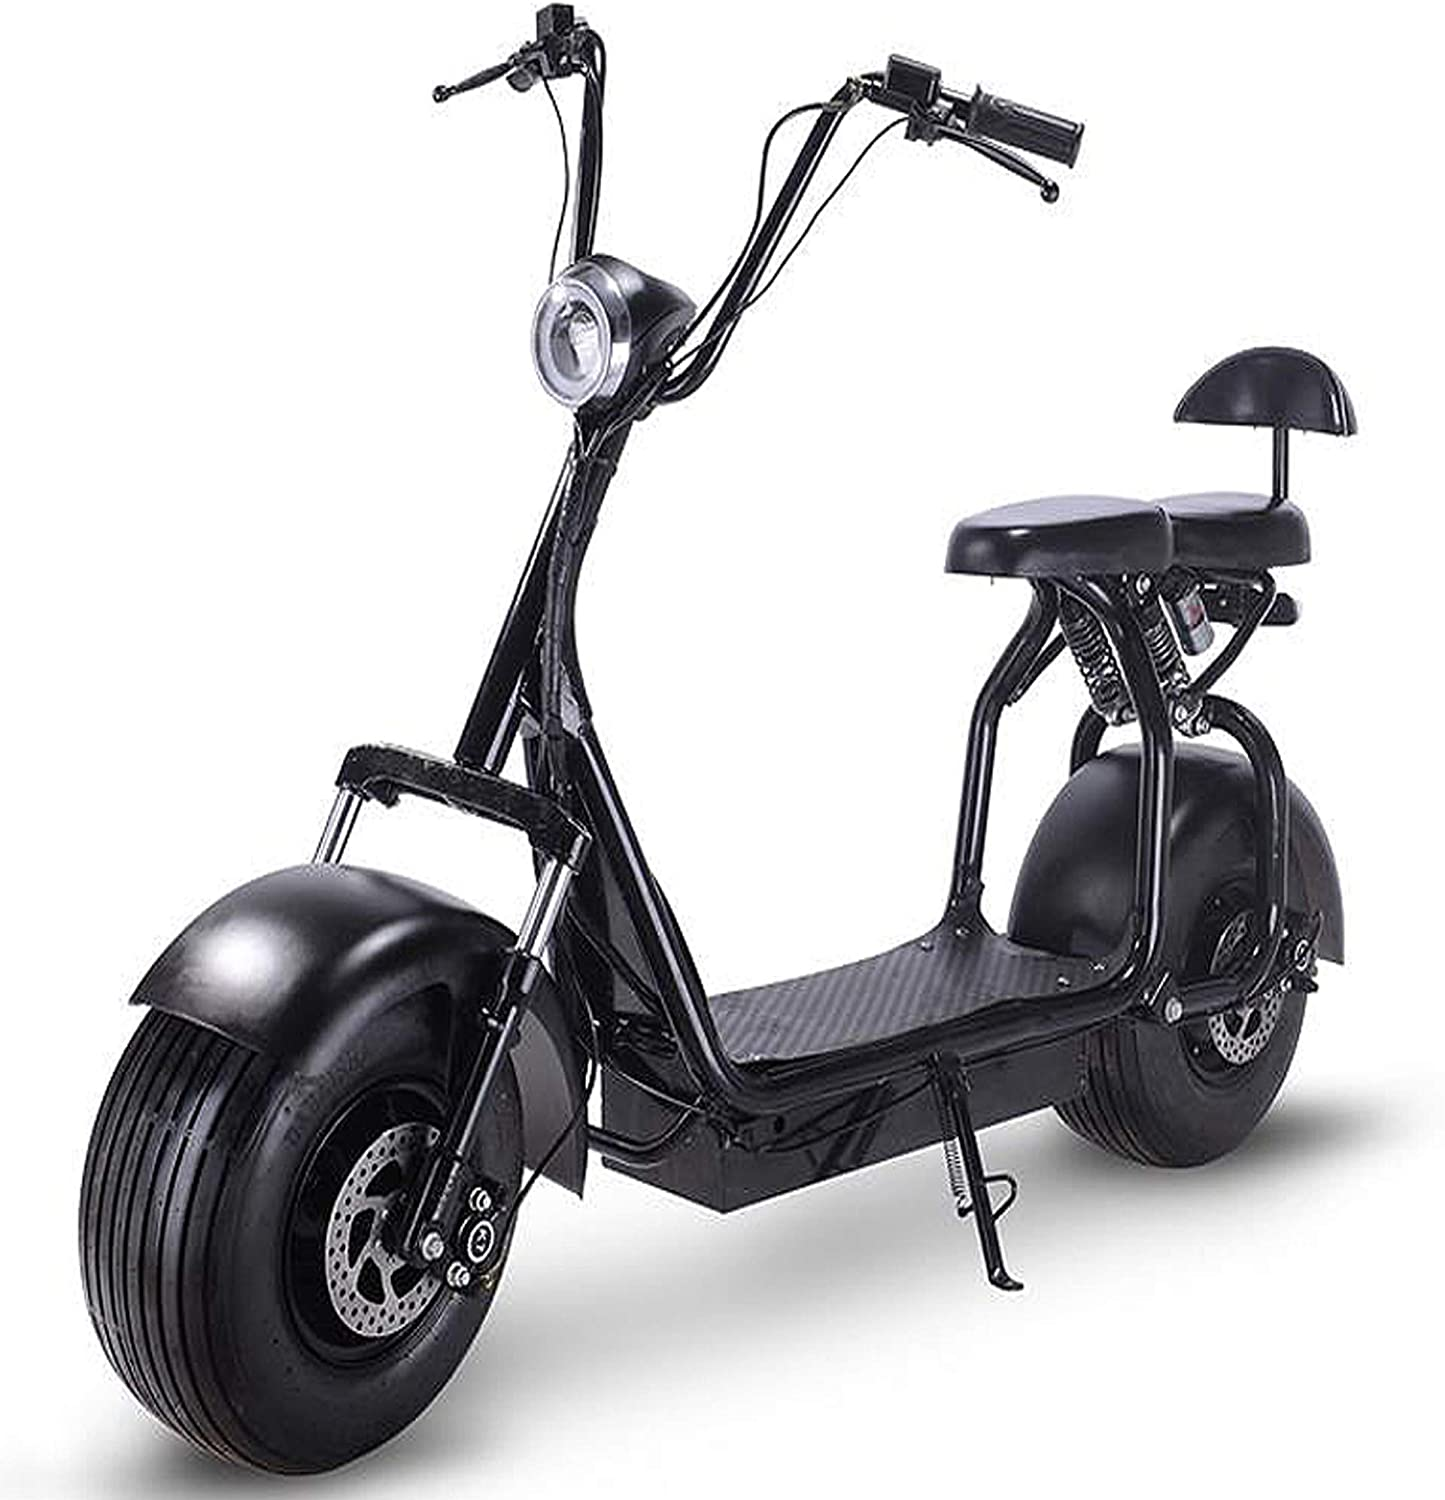 Electric Scooter for Adults (BLACK) SPEED (45KM/HR)